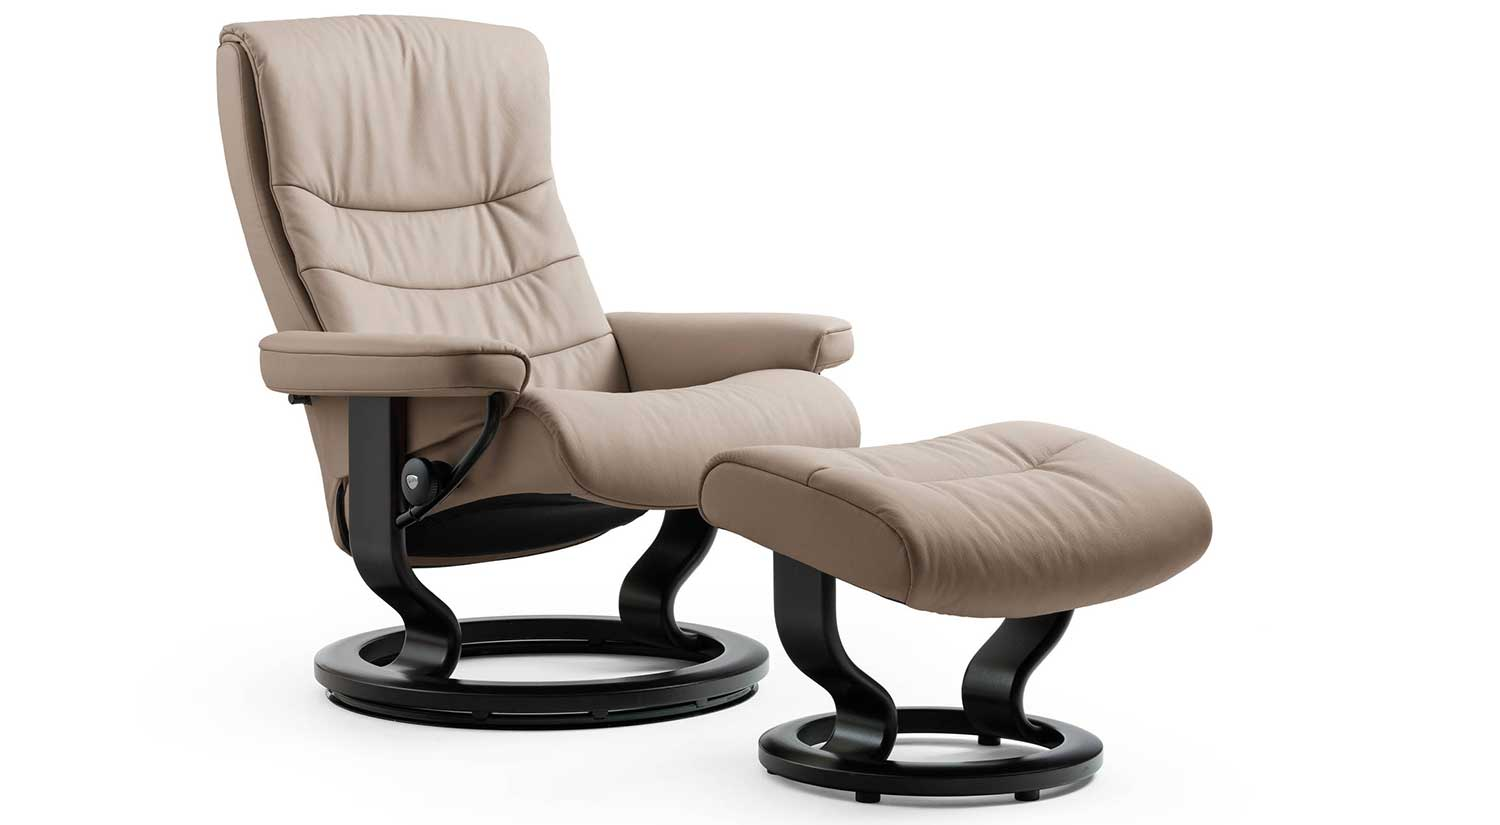 circle furniture nordic stressless chair leather